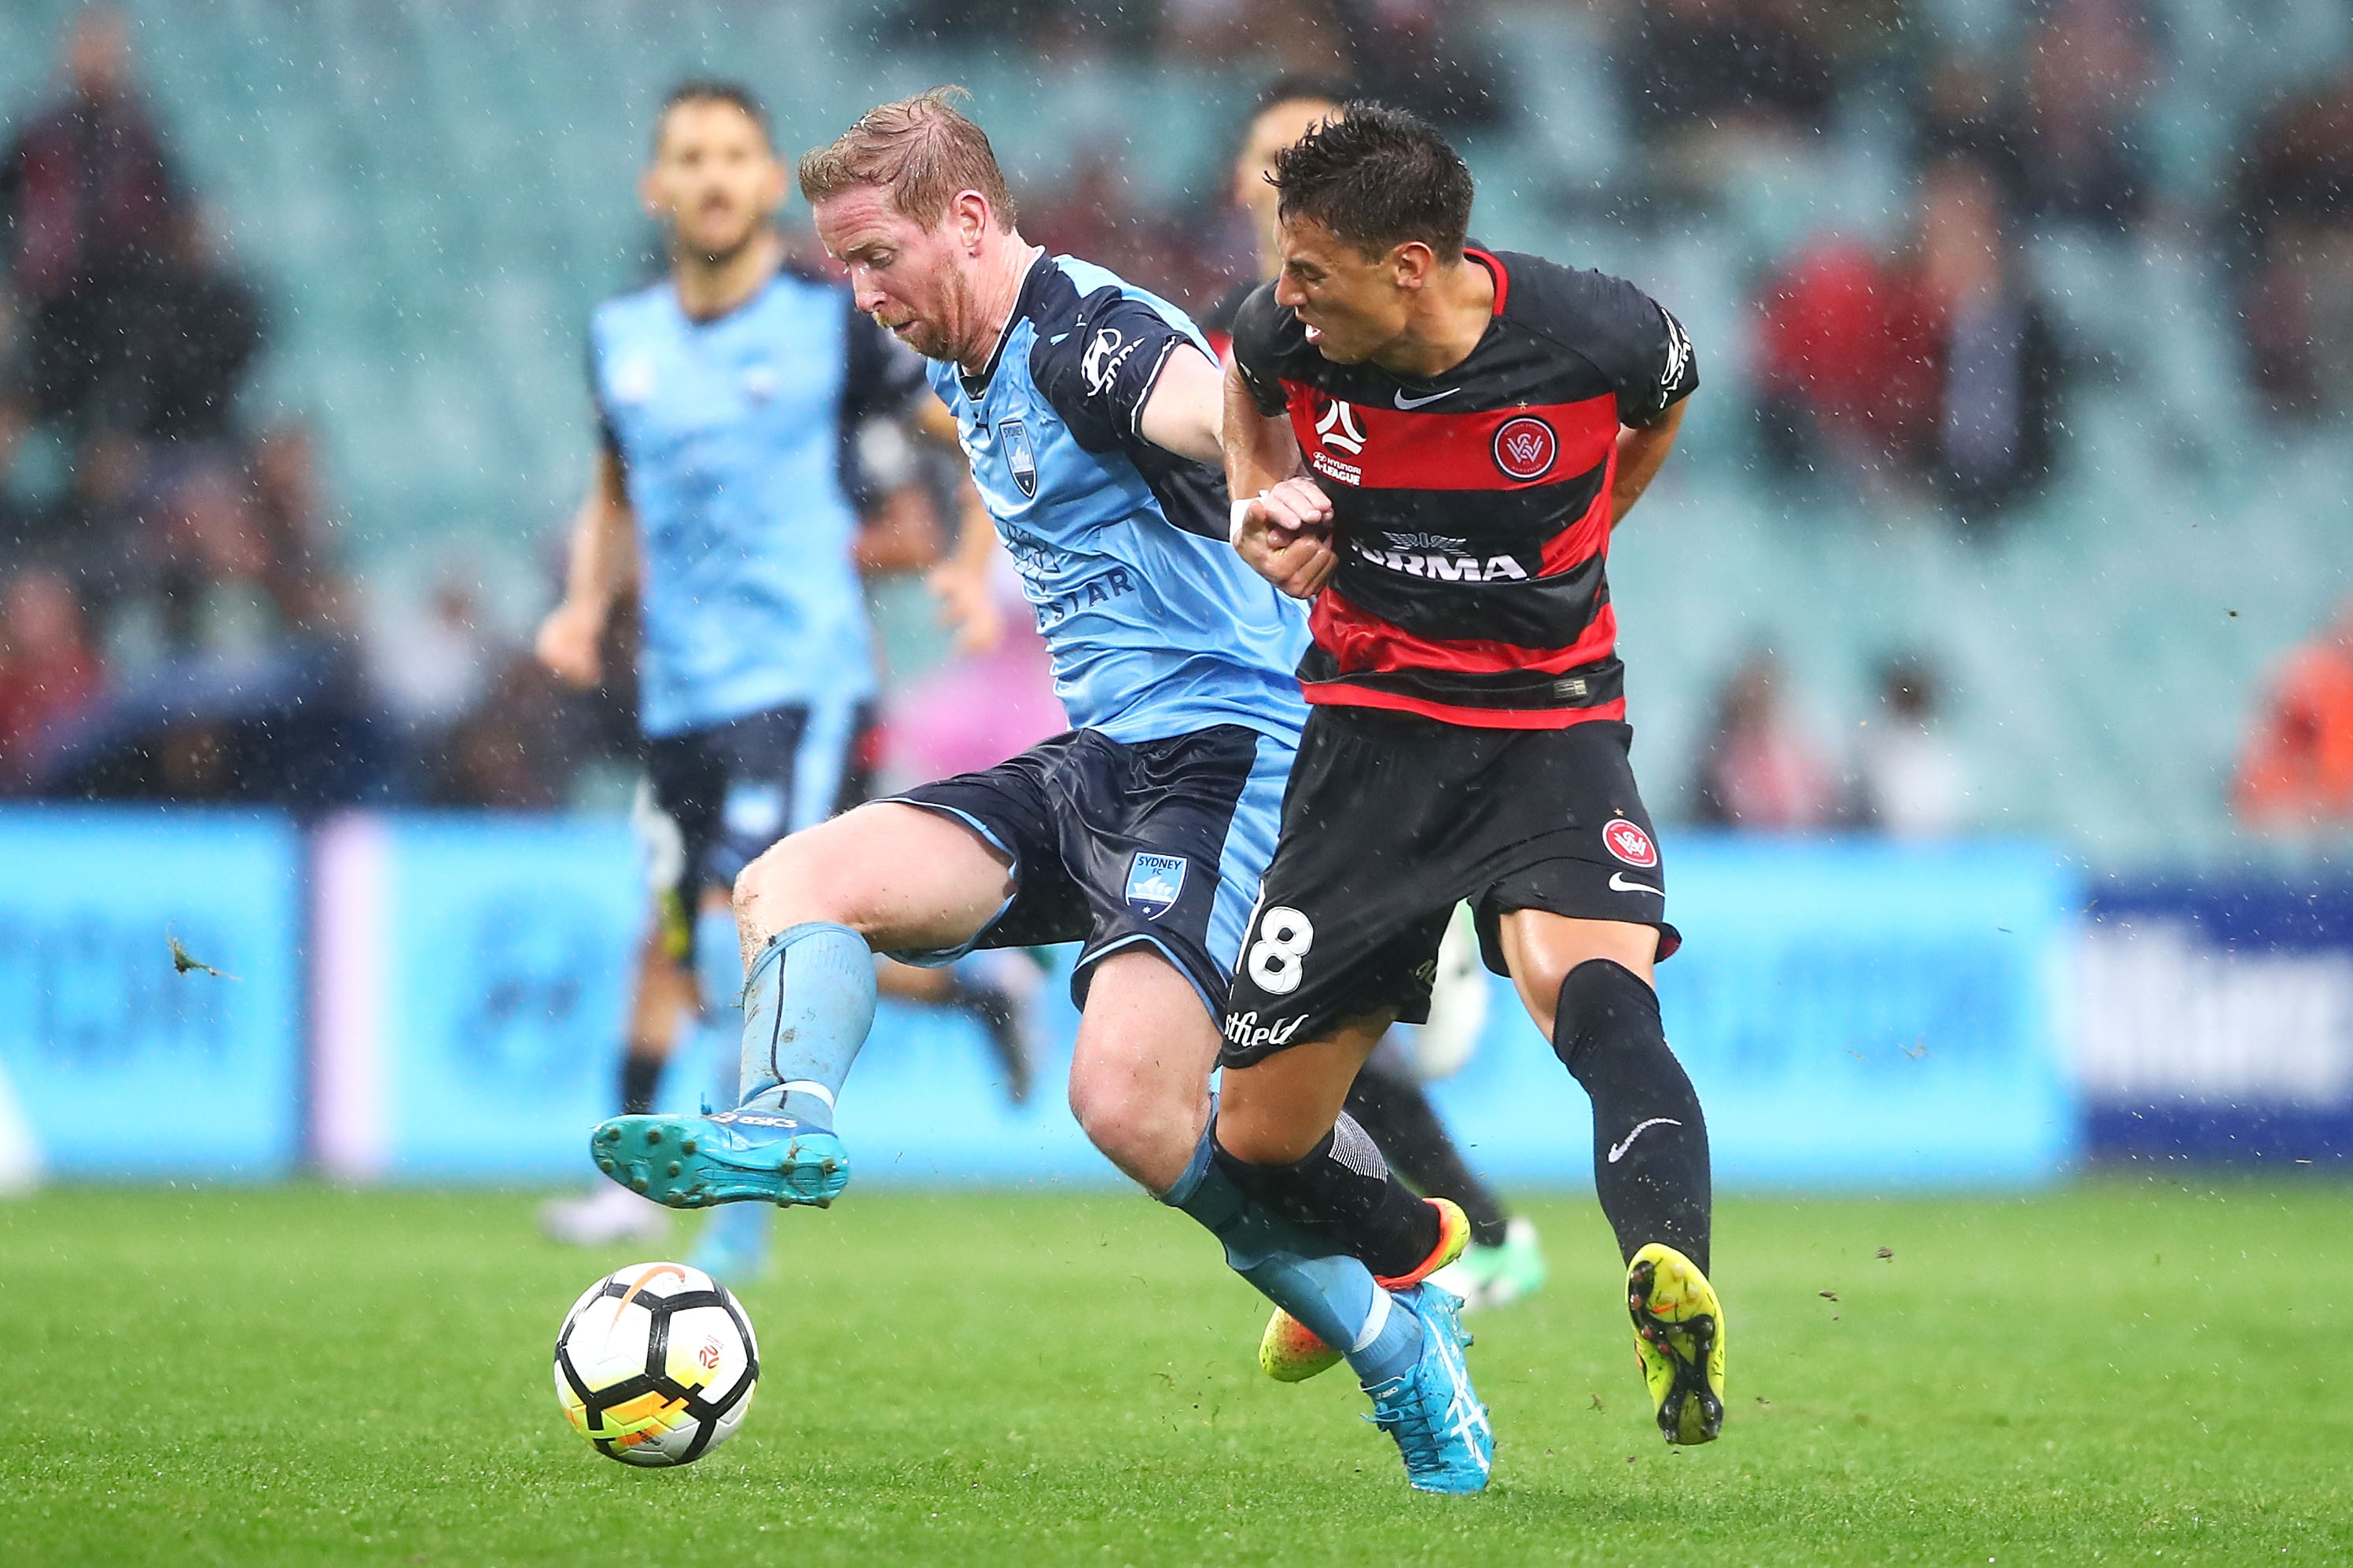 Chris Ikonomidis in action for the Wanderers.